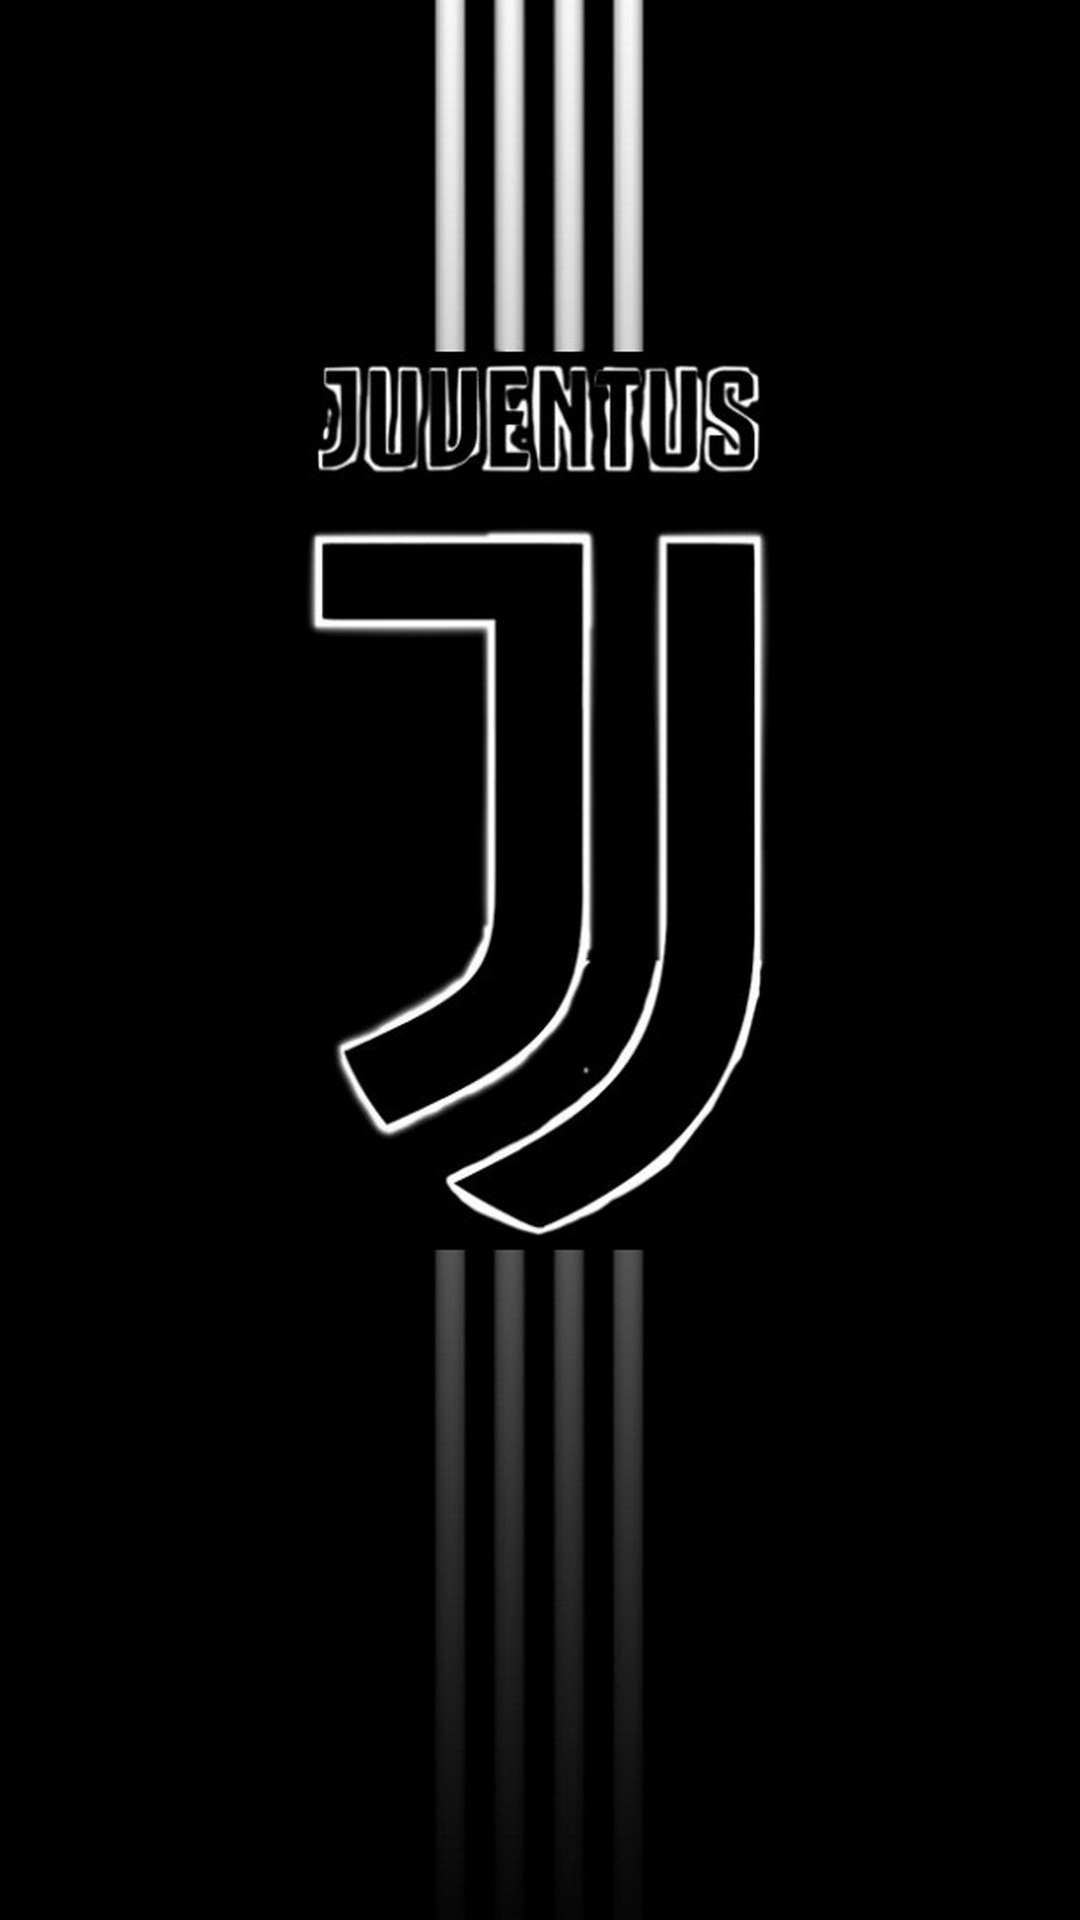 Juventus Fc Iphone X Wallpaper With Resolution Pixel Juventus Turin Wallpaper 4k 1080x1920 Wallpaper Teahub Io